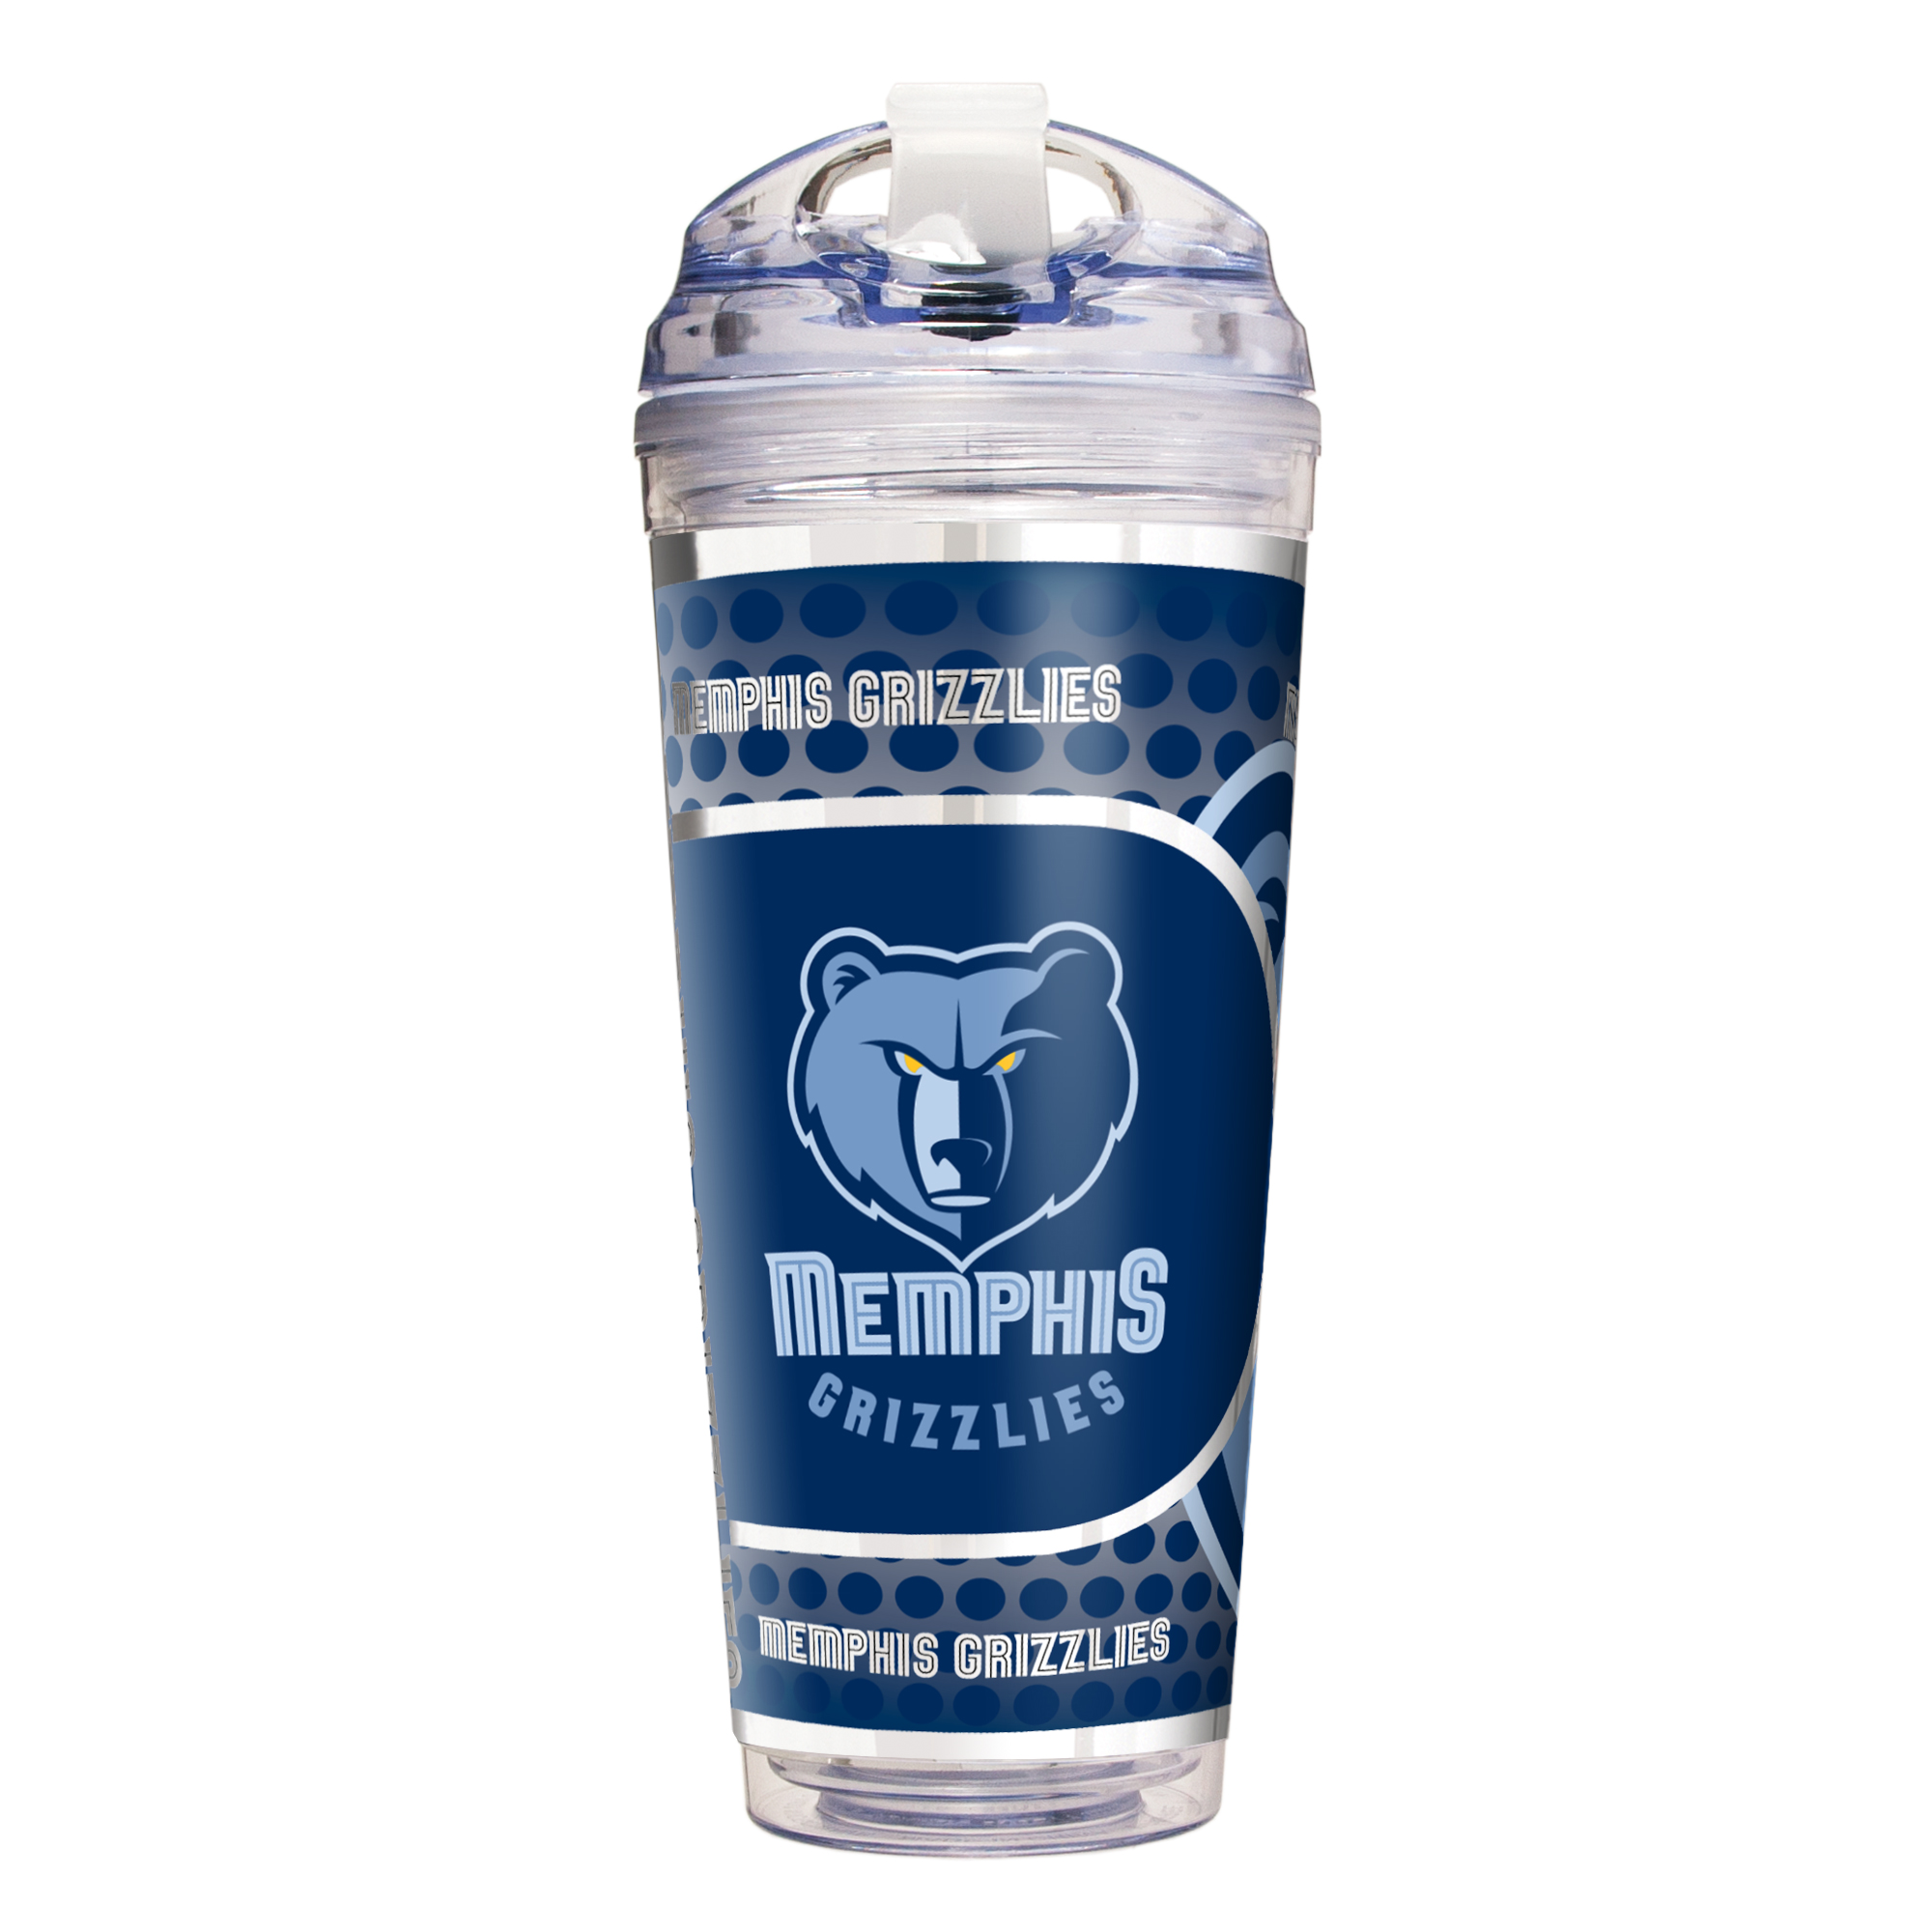 Memphis Grizzlies 24oz. Acrylic Travel Tumbler - No Size